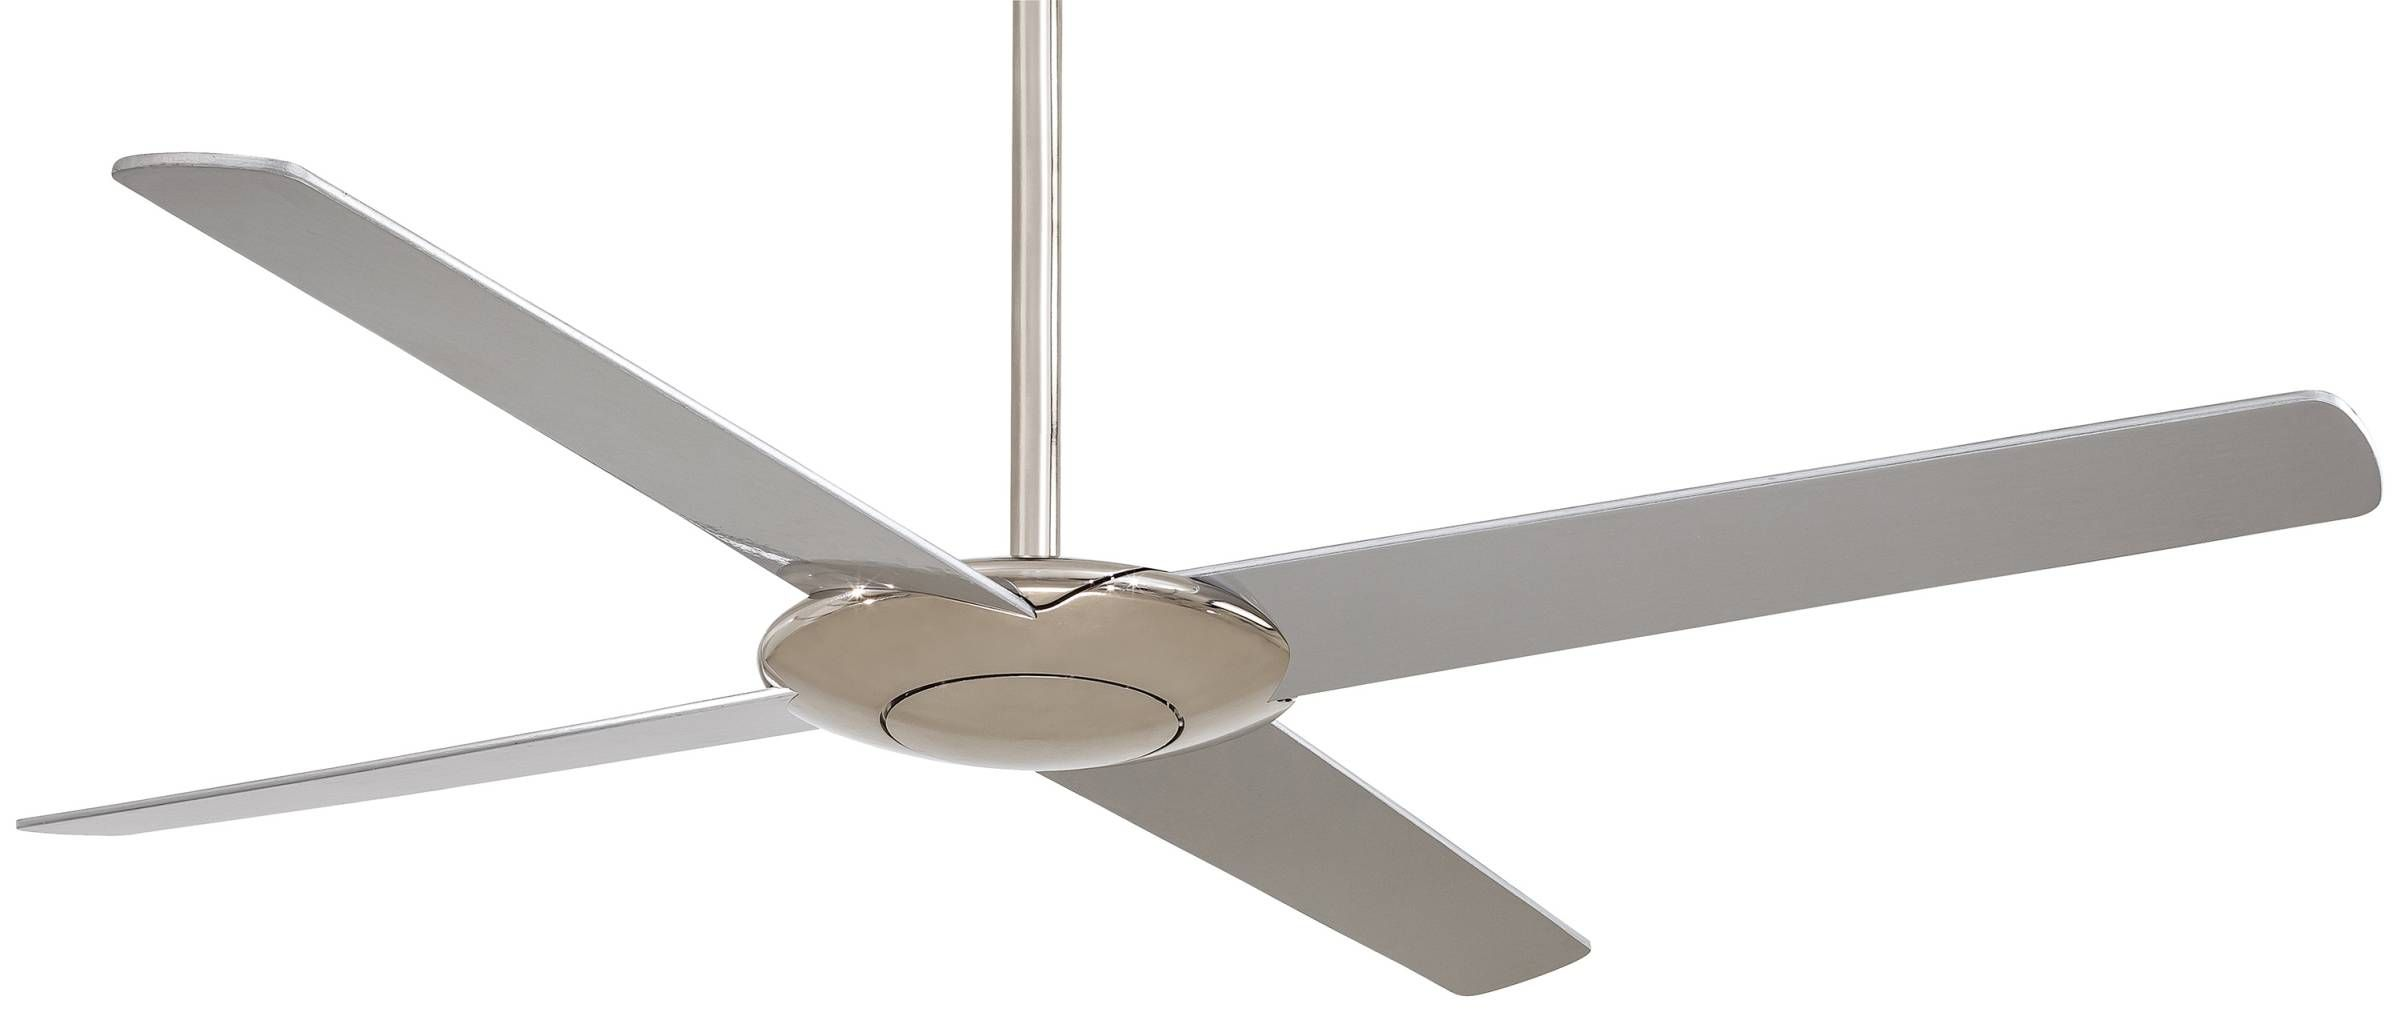 Minka Aire Pancake Ceiling Fan Mf F738 Bn In Brushed Nickel